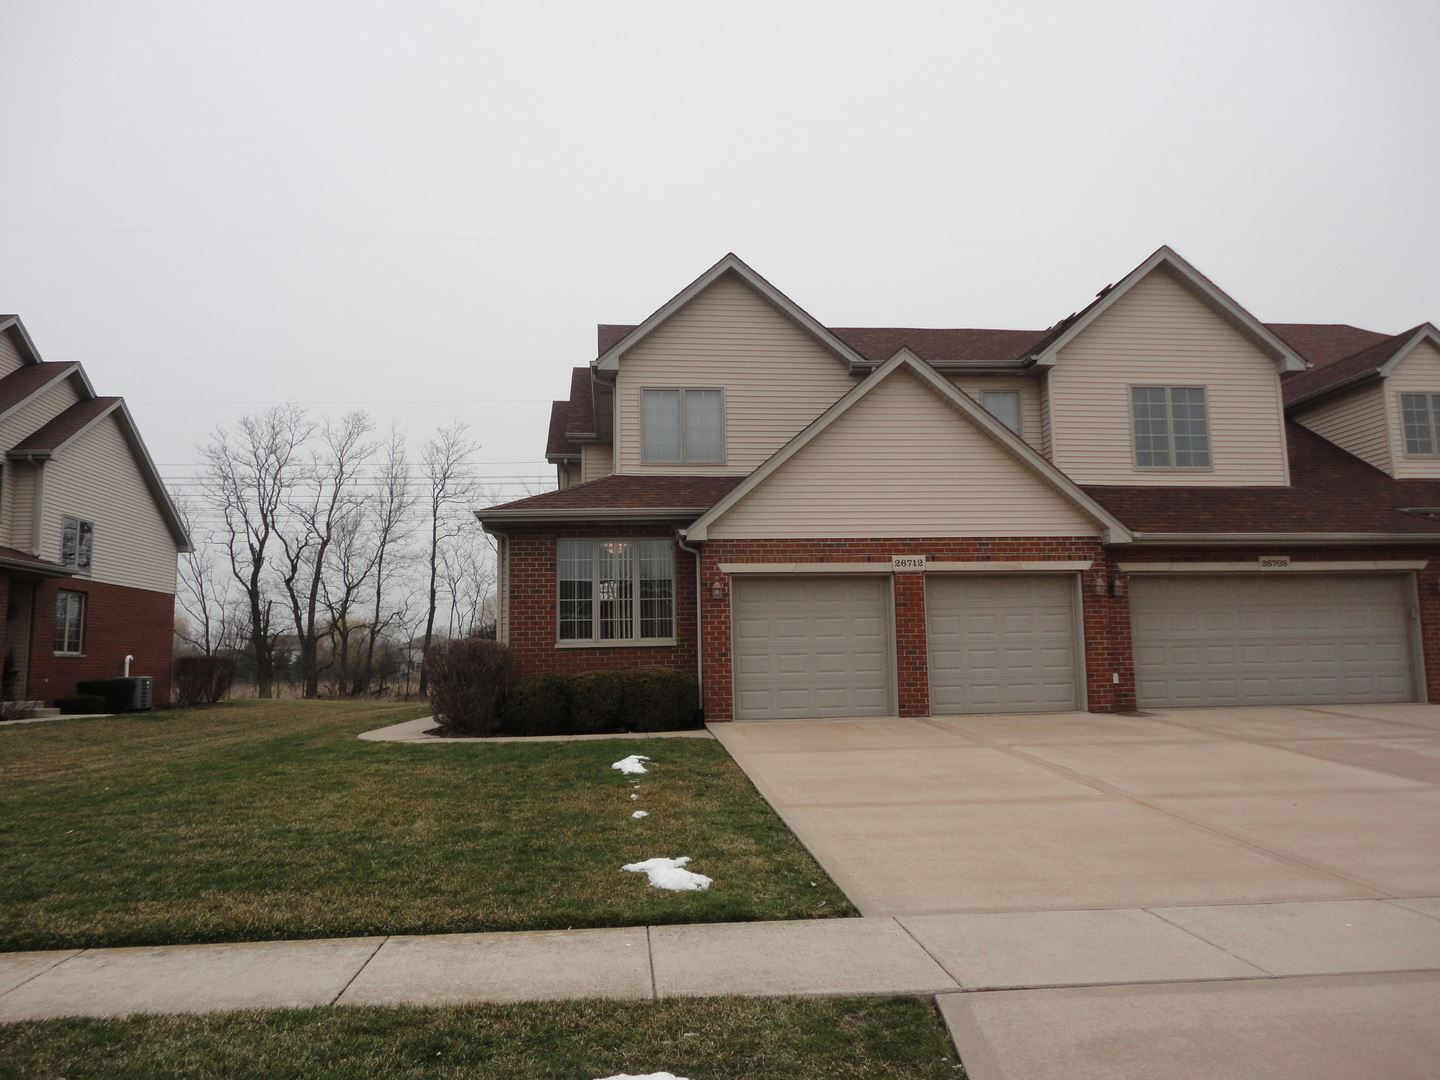 26712 W Old Kerry Grv, Channahon, IL 60410 - #: 10676795